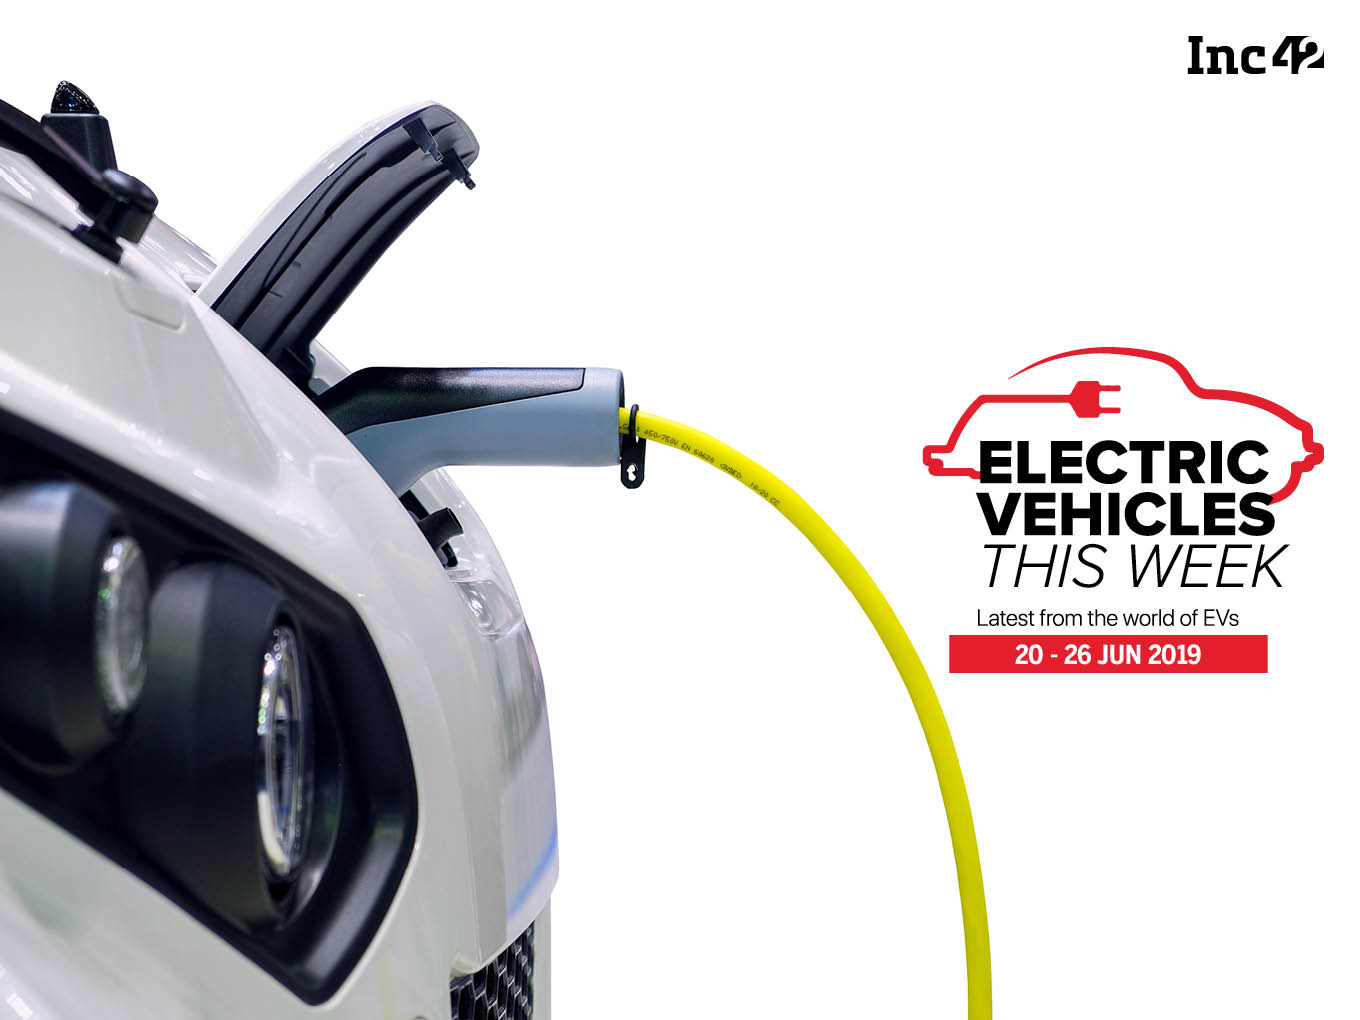 Electric Vehicles This Week: Govt Ask Automakers For Concrete EV Plans